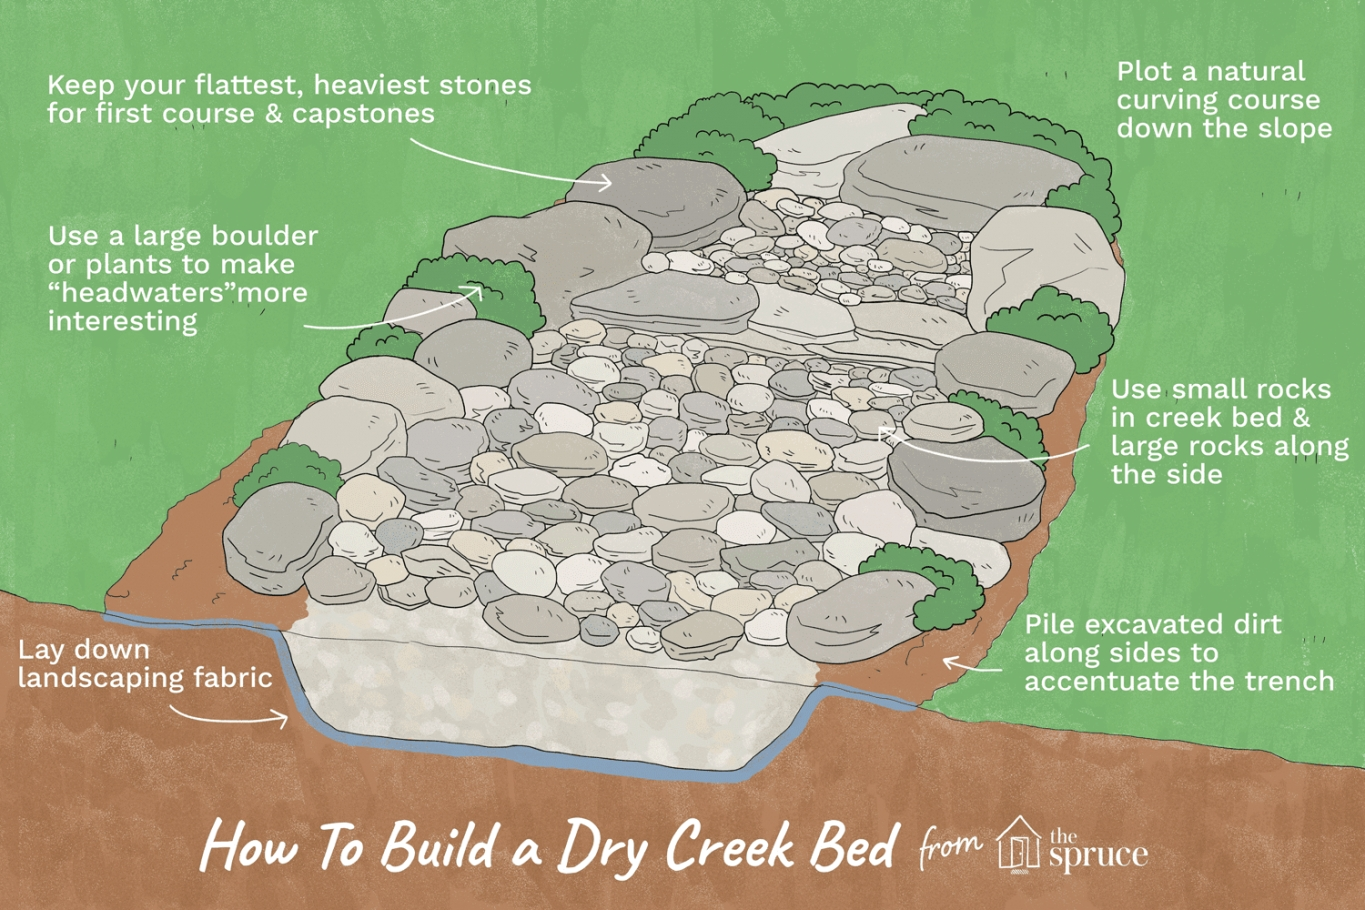 How To Build A Dry Creek Bed with regard to Is It Illegal To Remodel Without A Permit